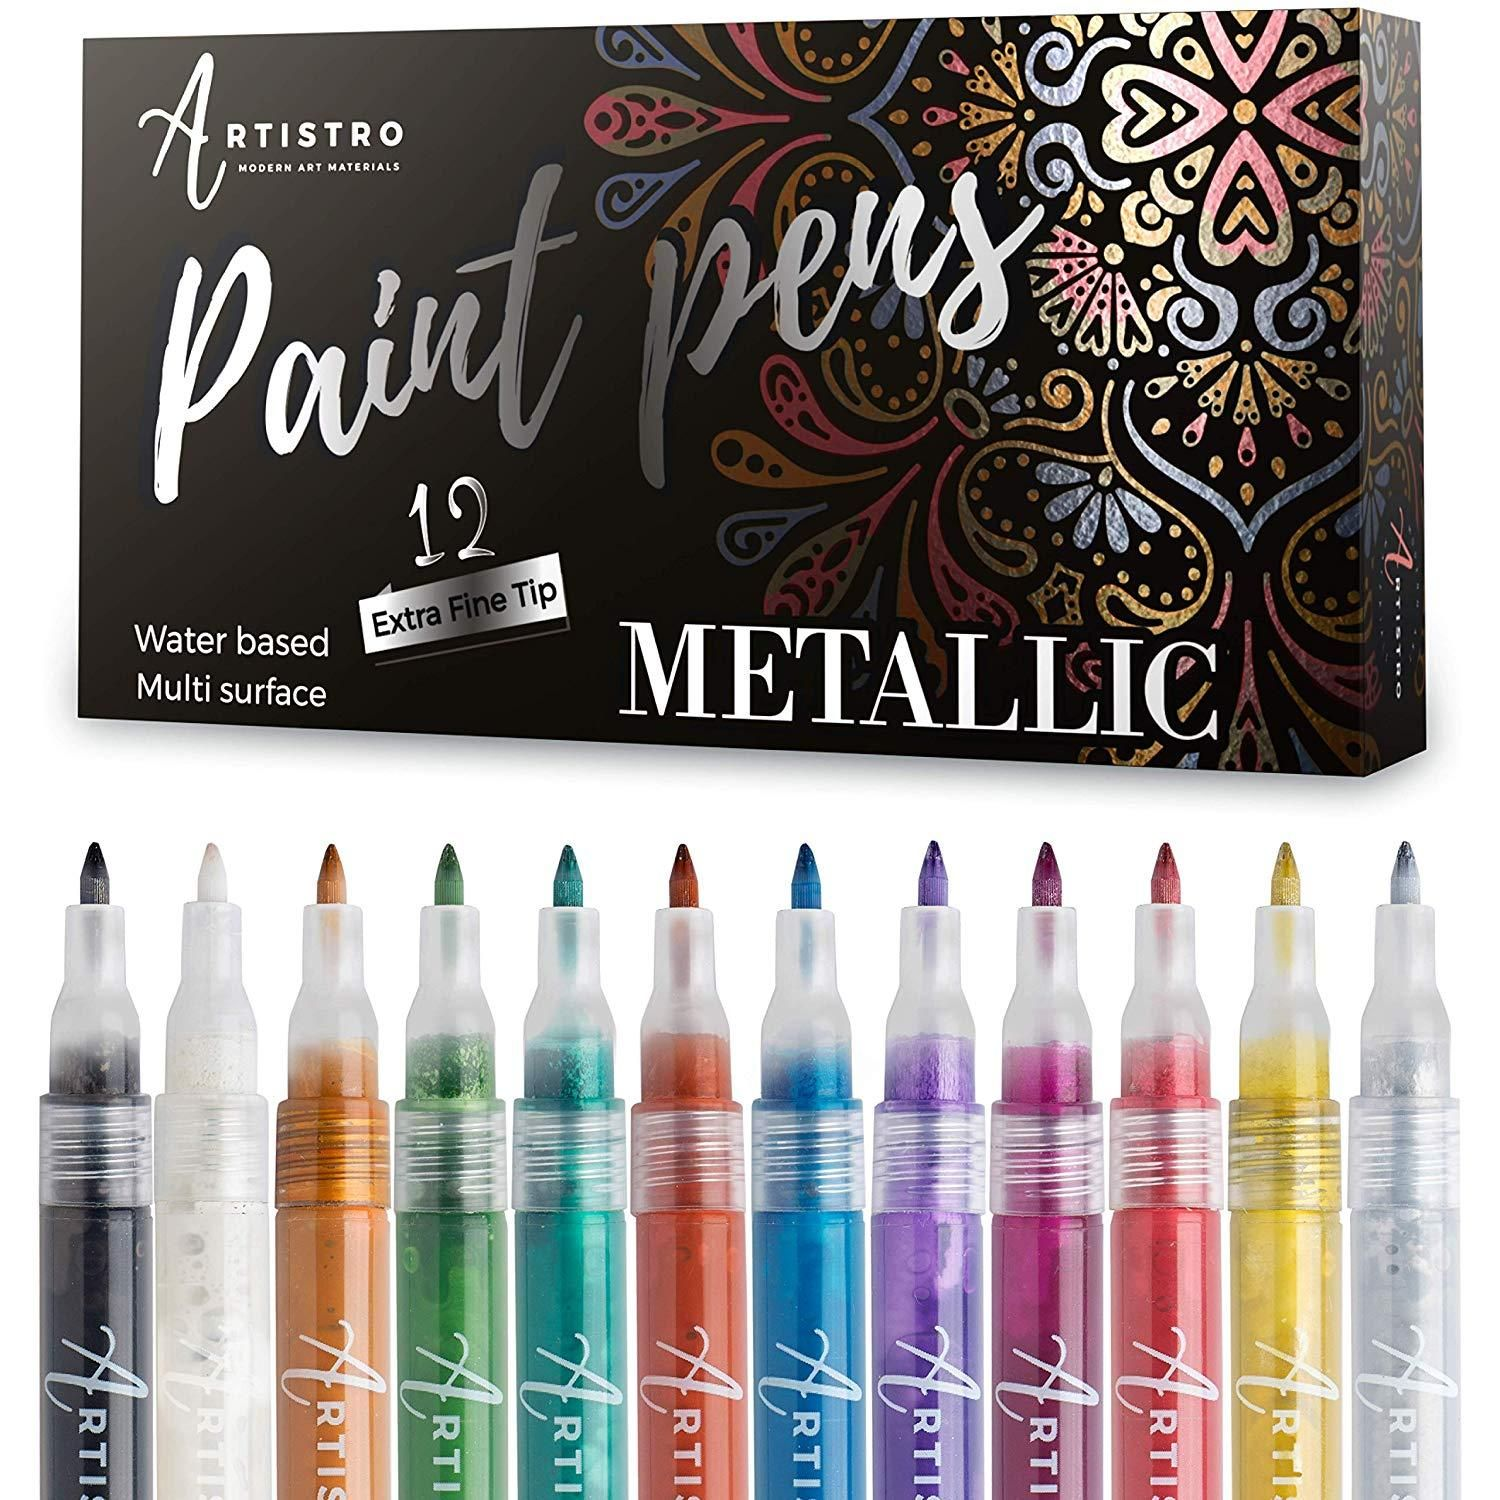 Metallic Paint Pens For Rock Painting And More Set Of 12 Acrylic Paint Markers Extra Fine Tip 0 7mm Paint Pens For Rocks Paint Pens Glitter Paint Pens